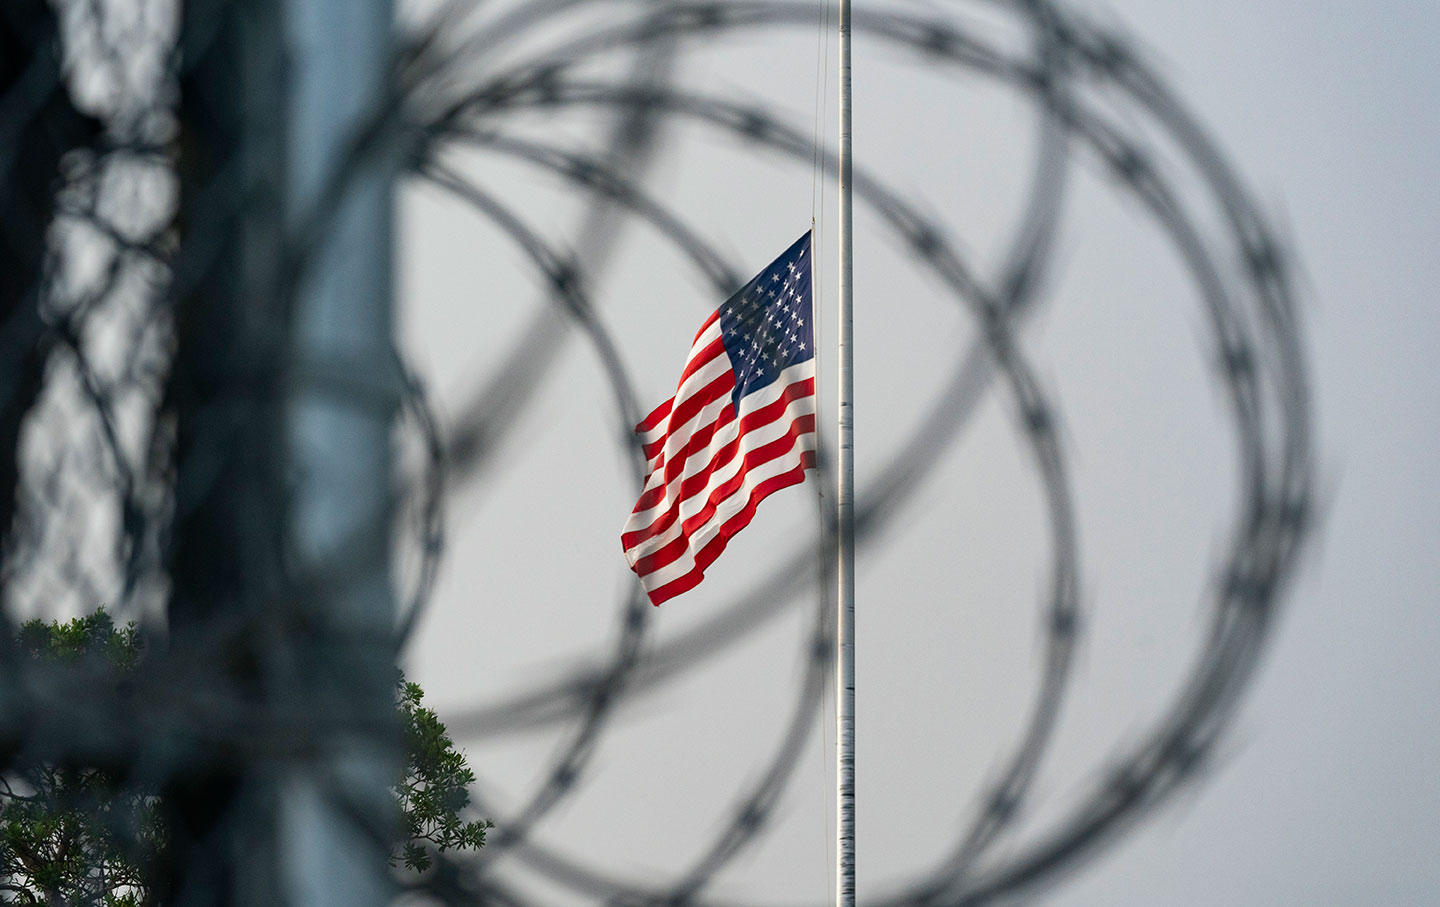 The Human Rights Violations of the 9/11 Era Are Still With Us